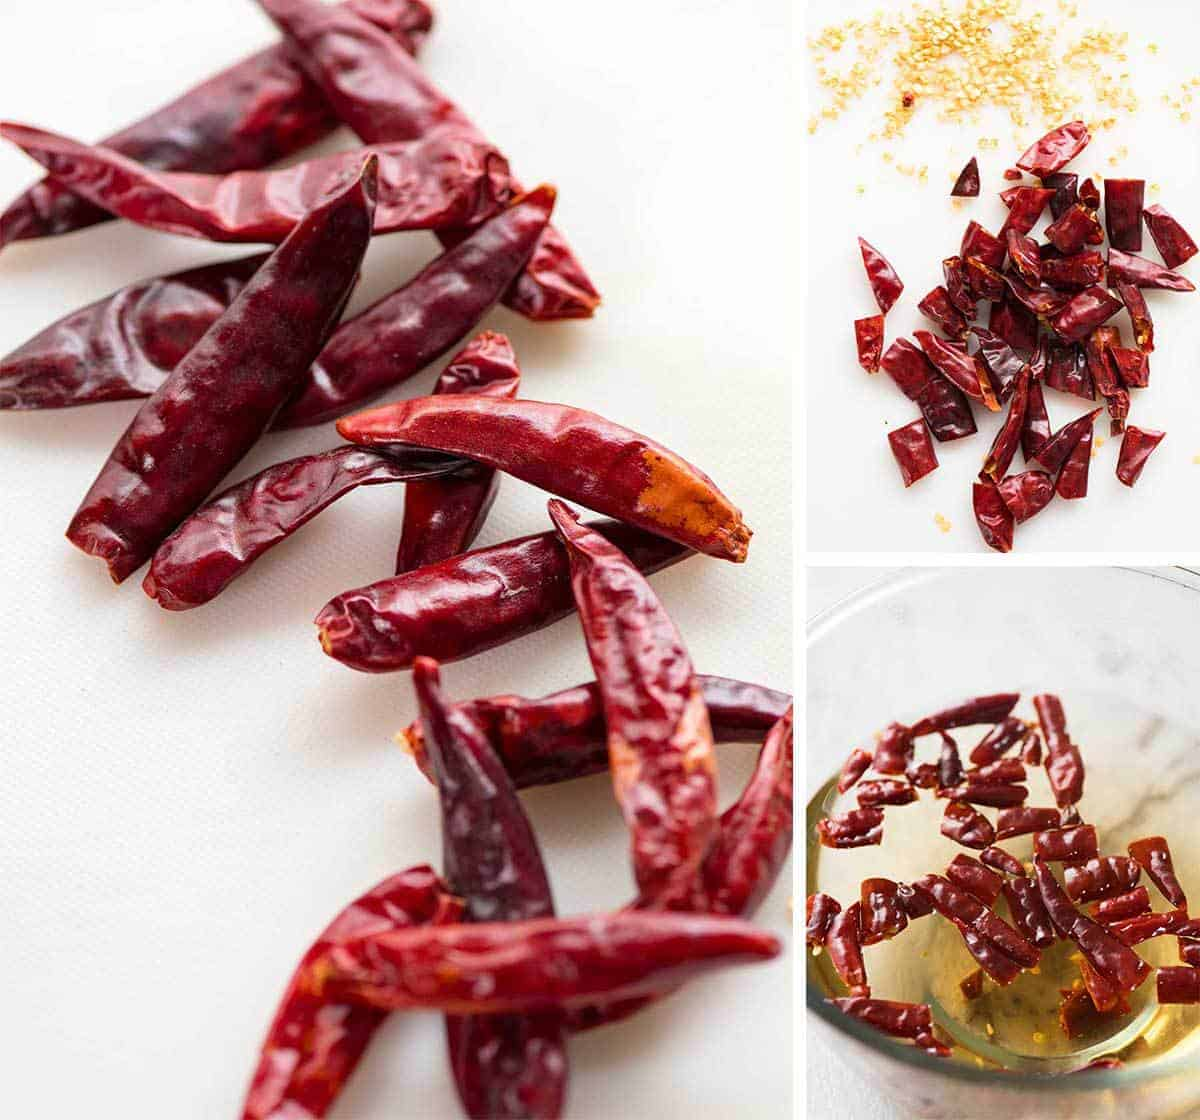 A key ingredient in Thai Red Curry Paste - dried red chillies.